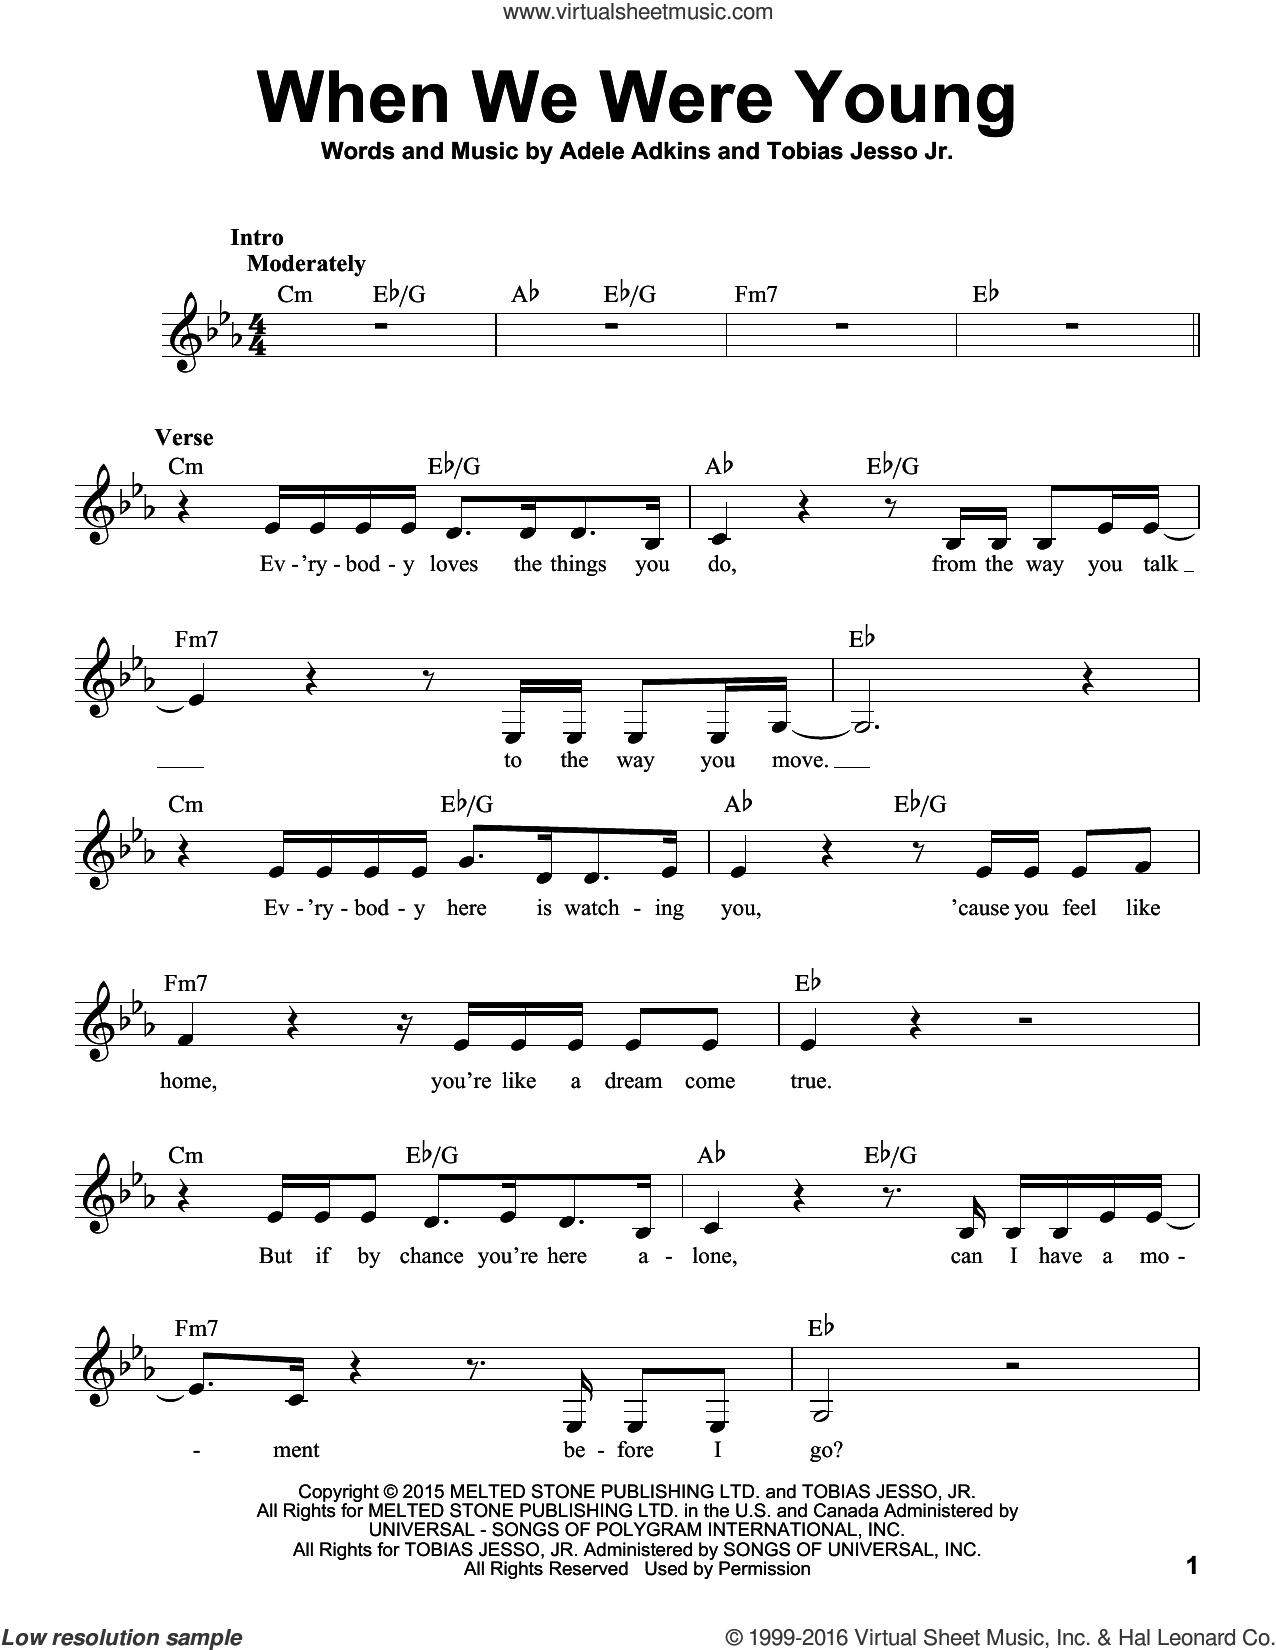 When We Were Young sheet music for voice solo by Adele, Adele Adkins and Tobias Jesso Jr., intermediate skill level